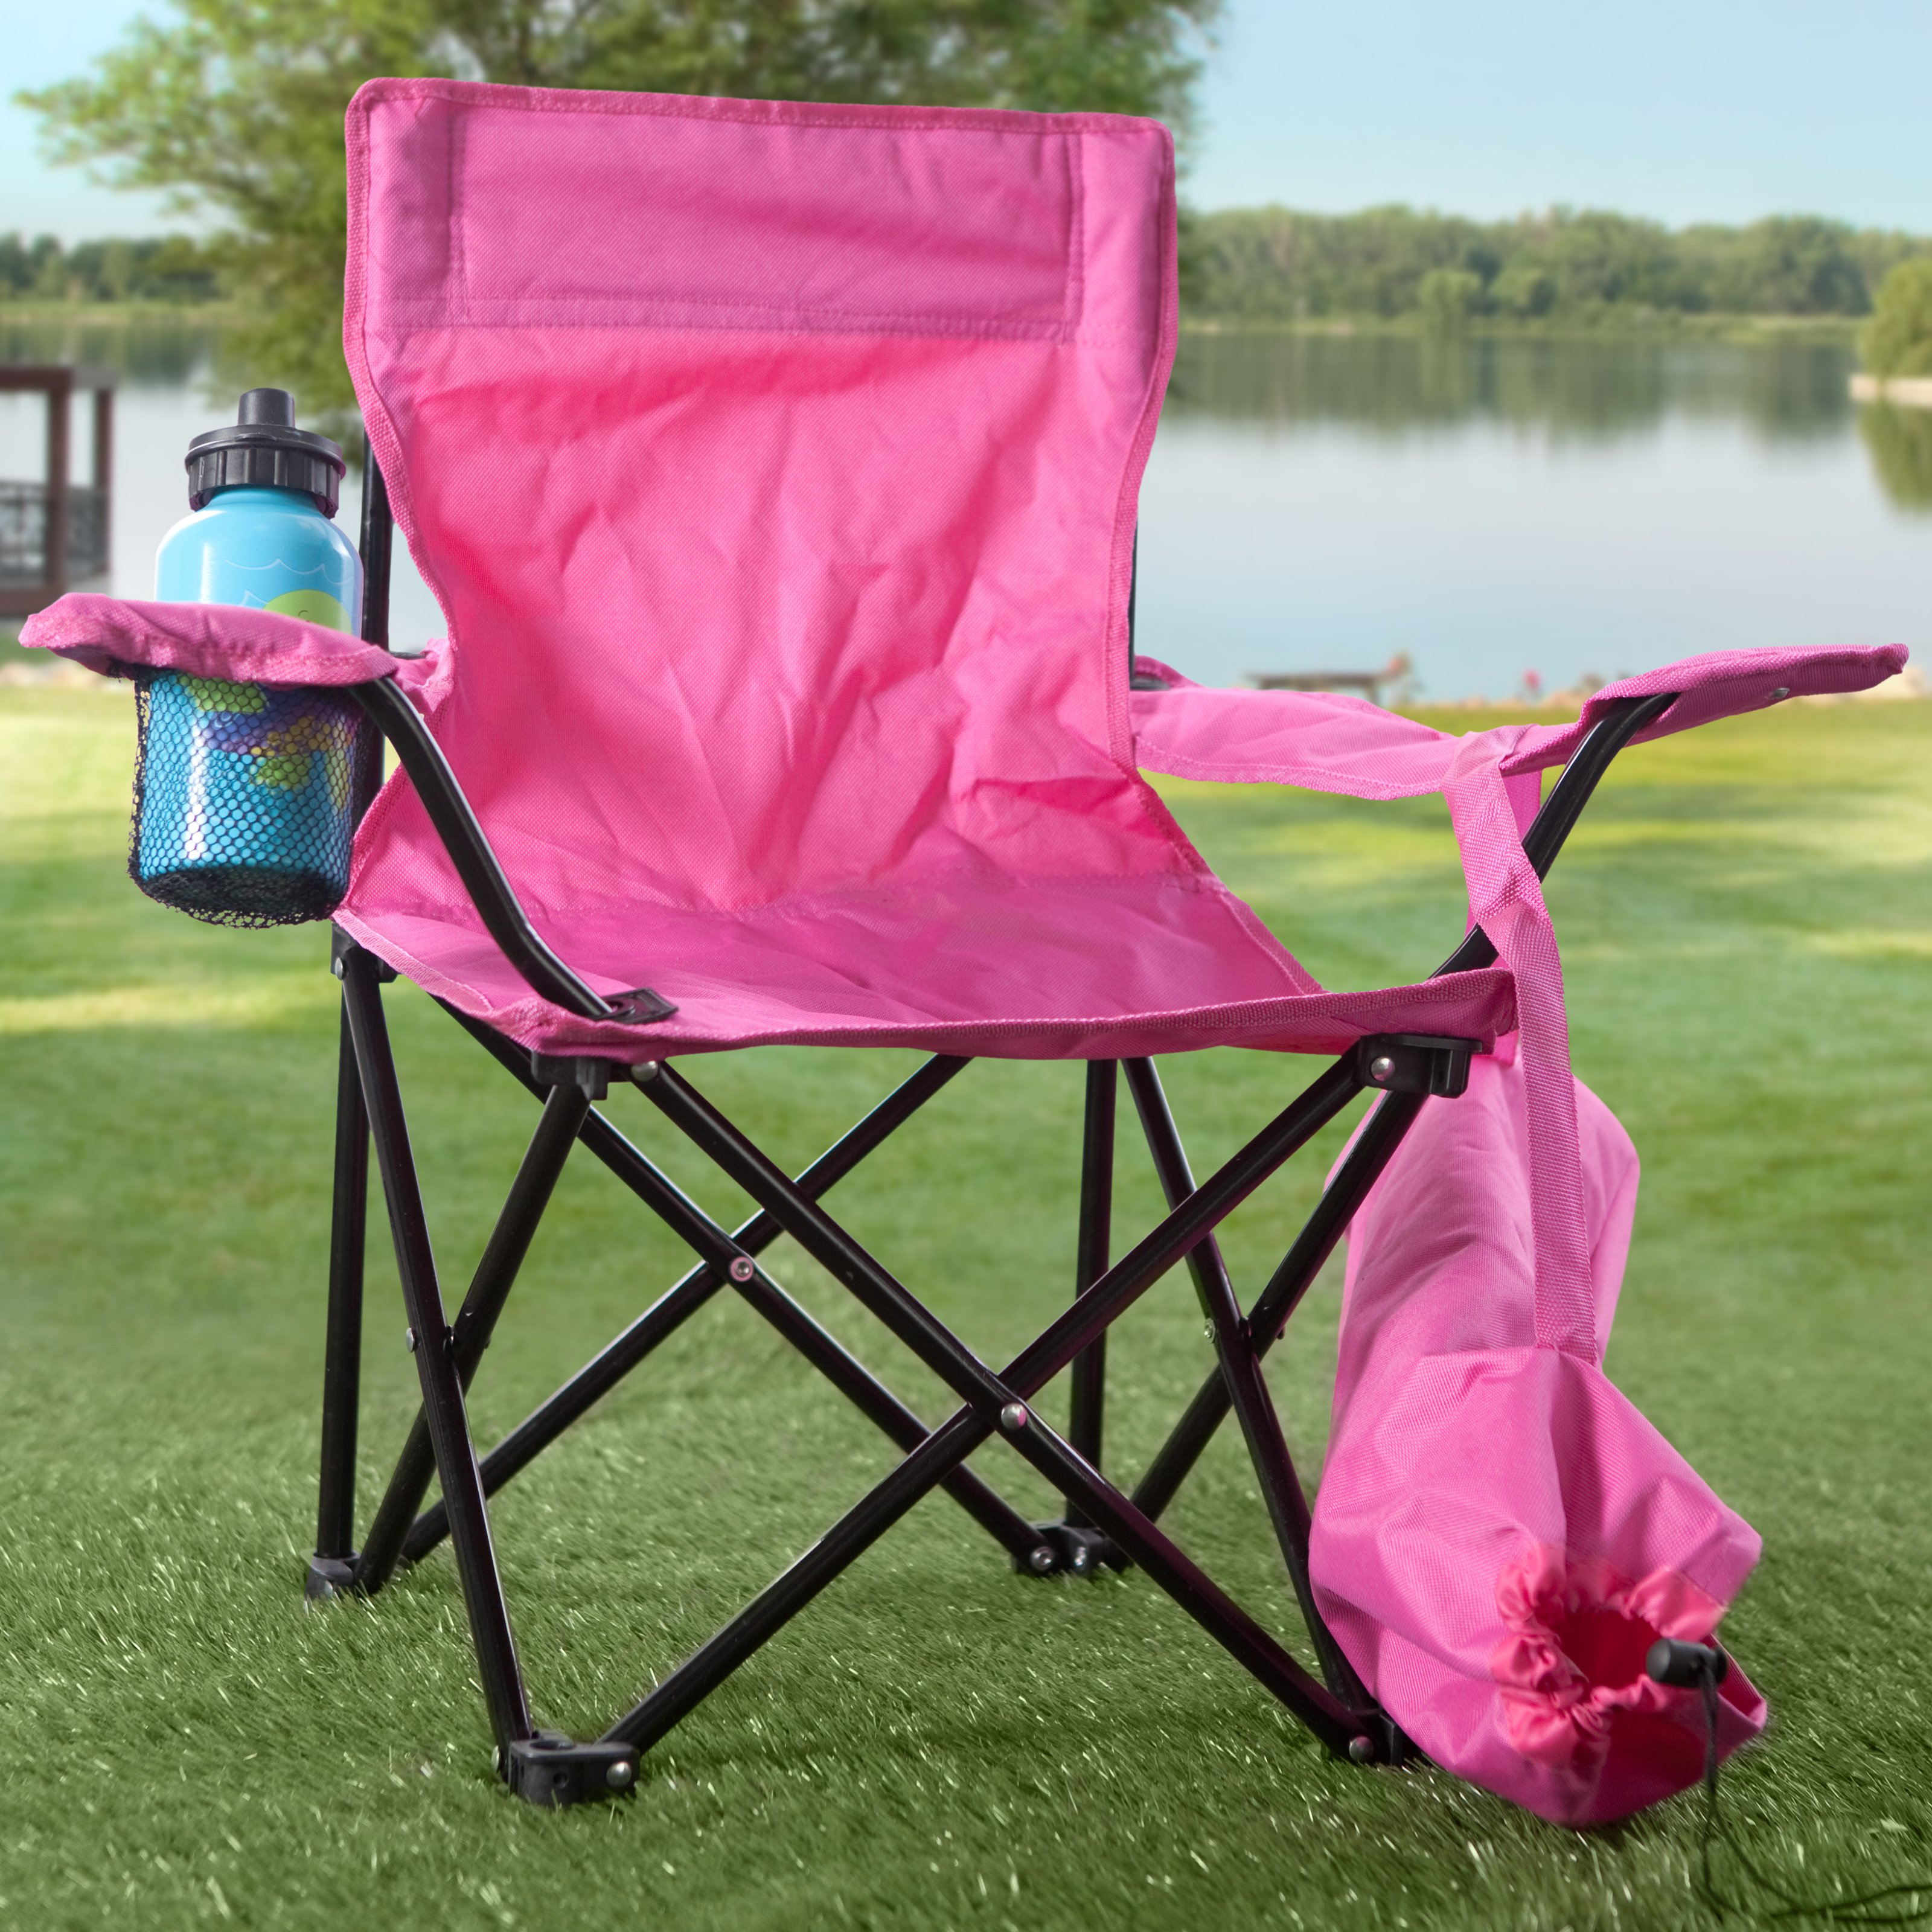 Folding Camp Chair For Kids